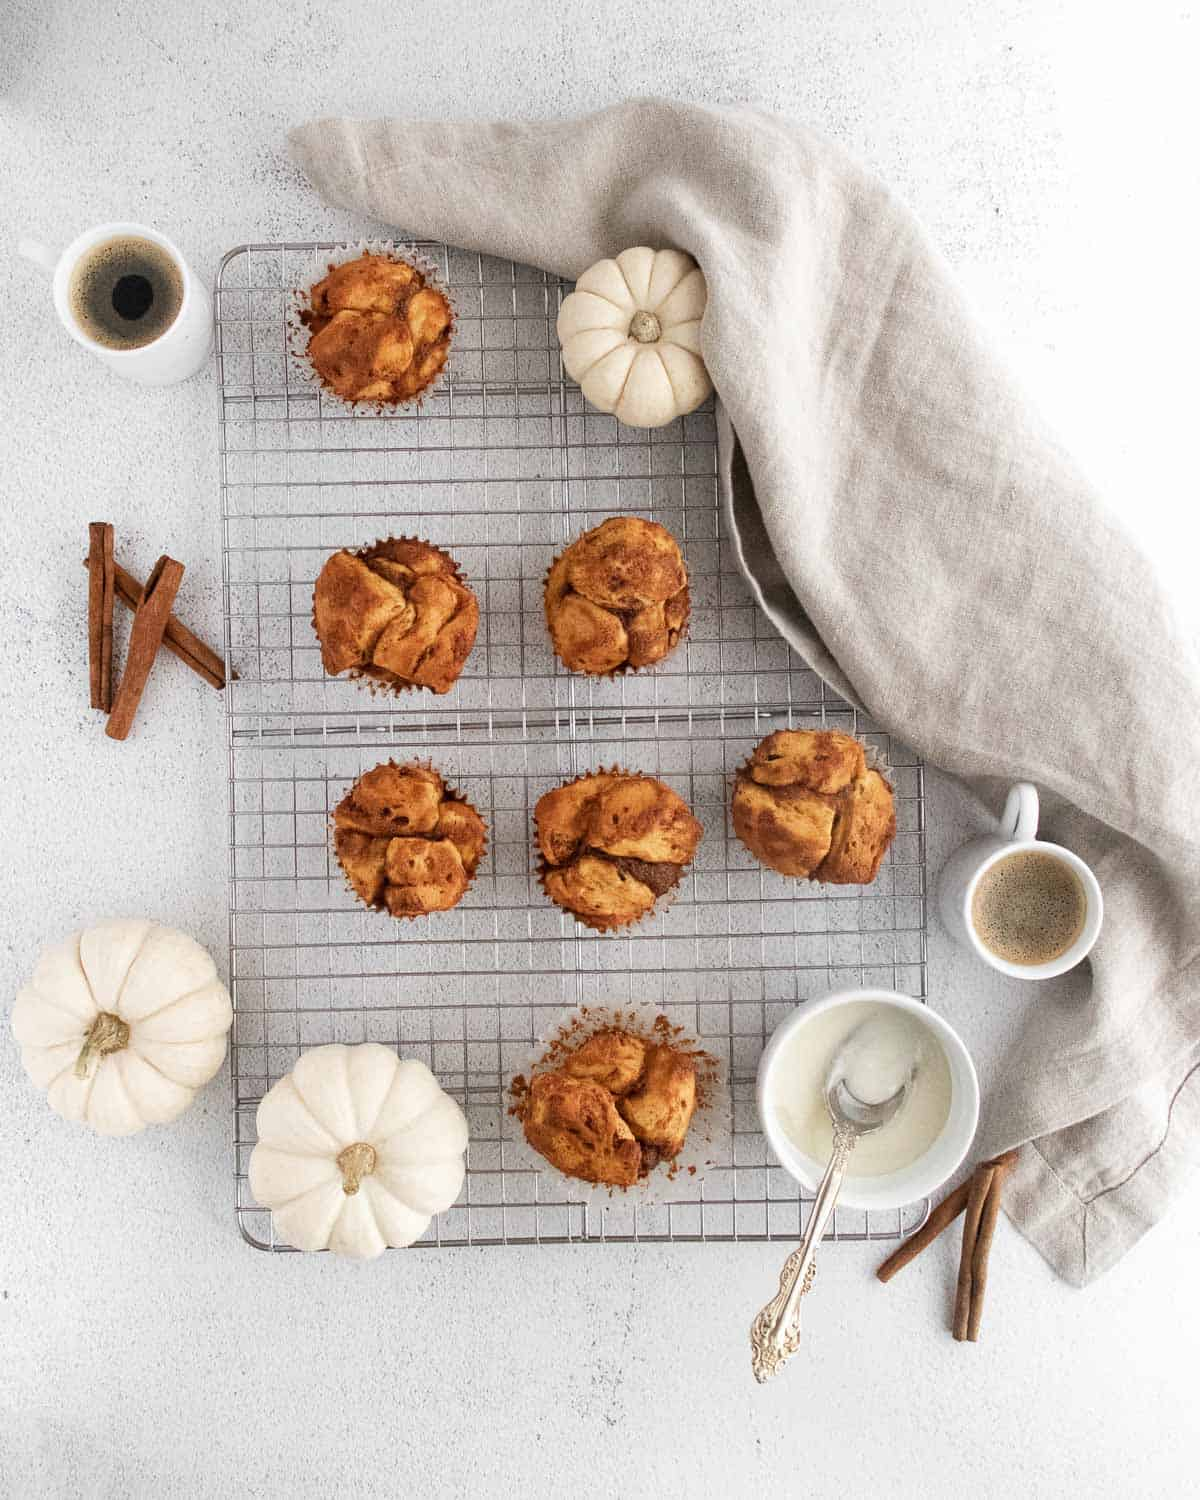 Overhead view of monkey bread muffins on a cooling rack, with white pumpkins and cinnamon sticks.